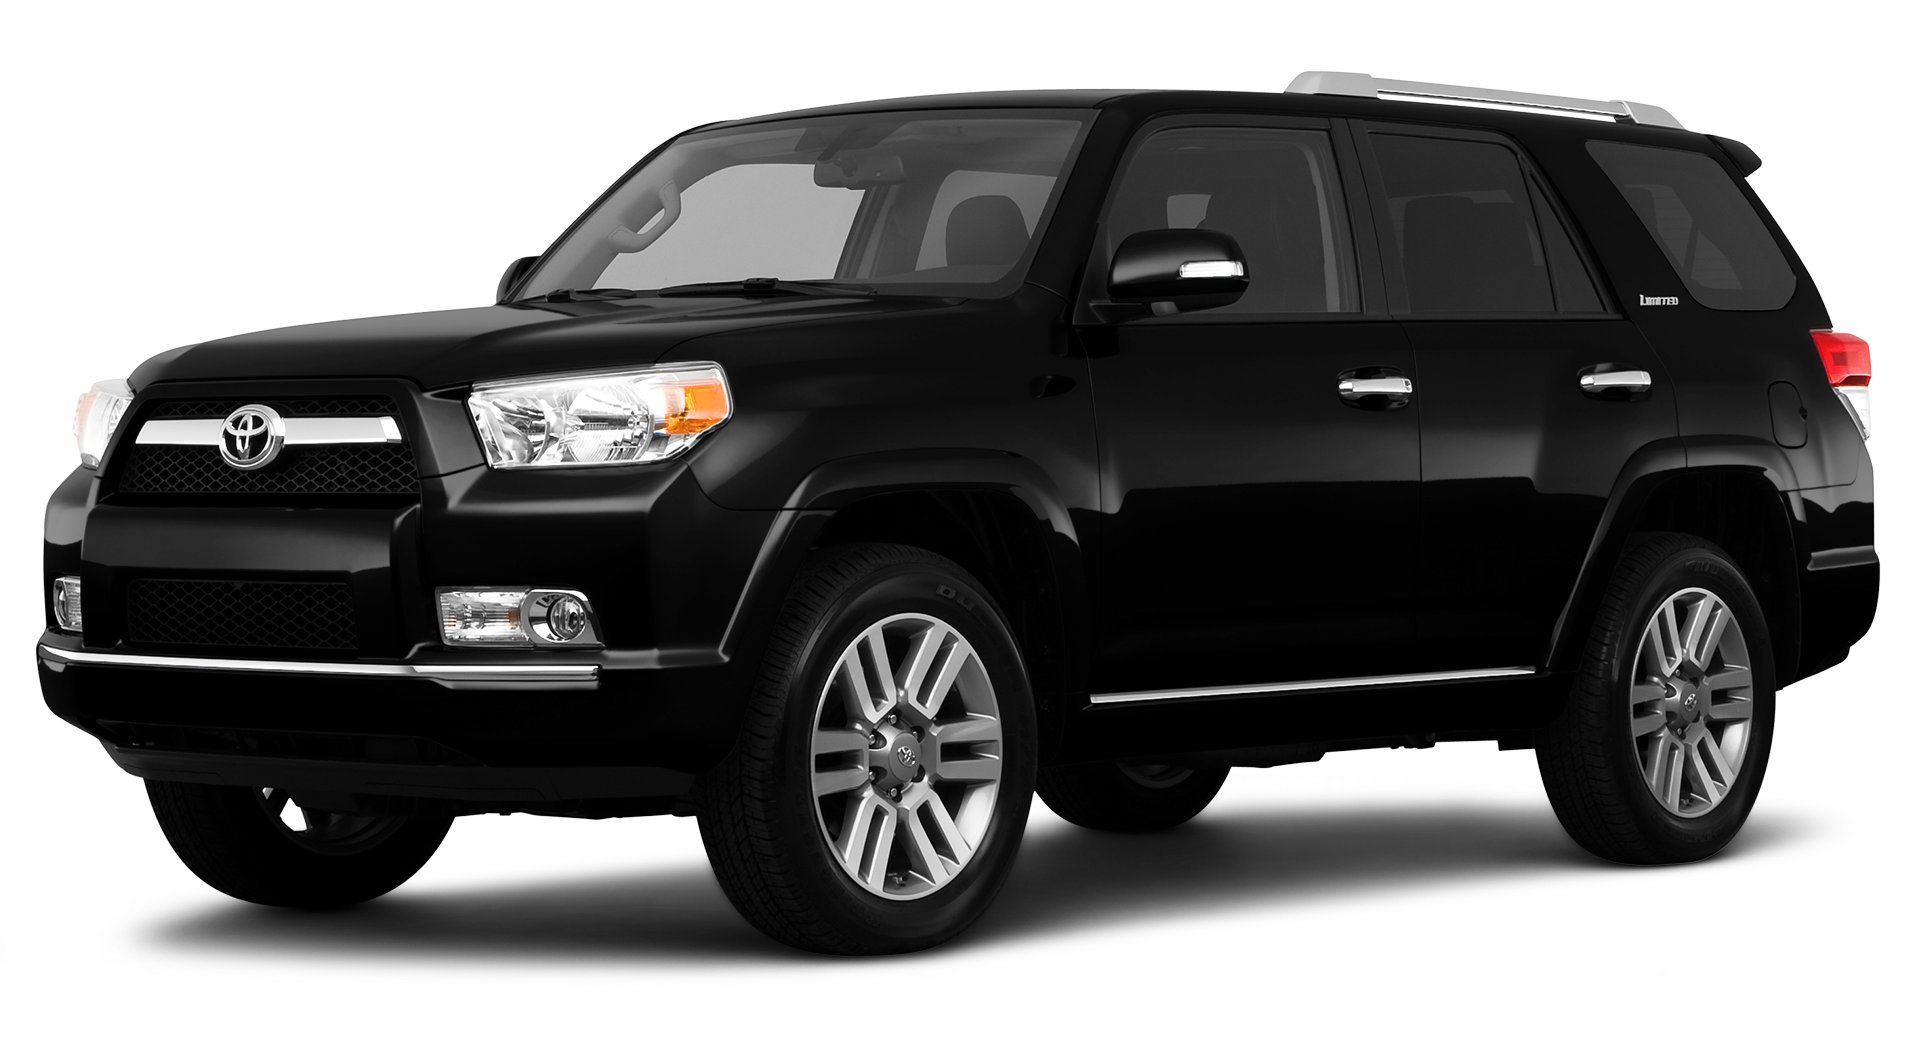 2010 toyota 4runner reviews images and specs. Black Bedroom Furniture Sets. Home Design Ideas